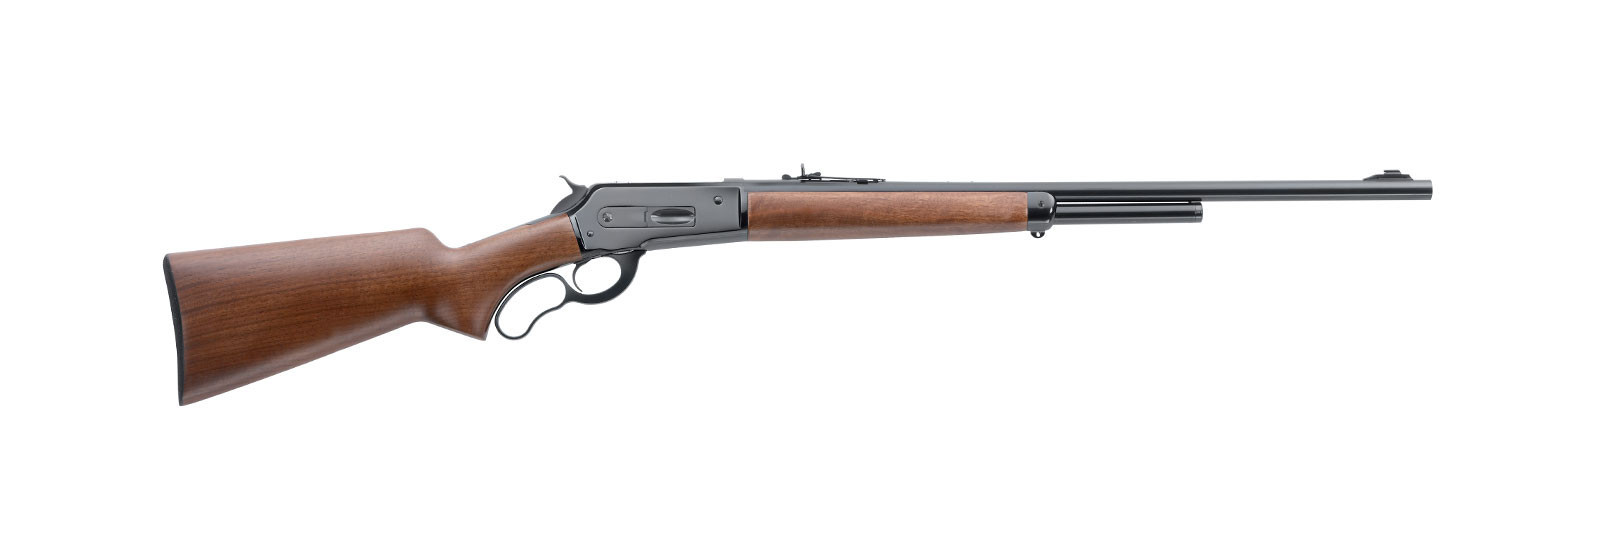 86/71 Lever Action Wildbuster